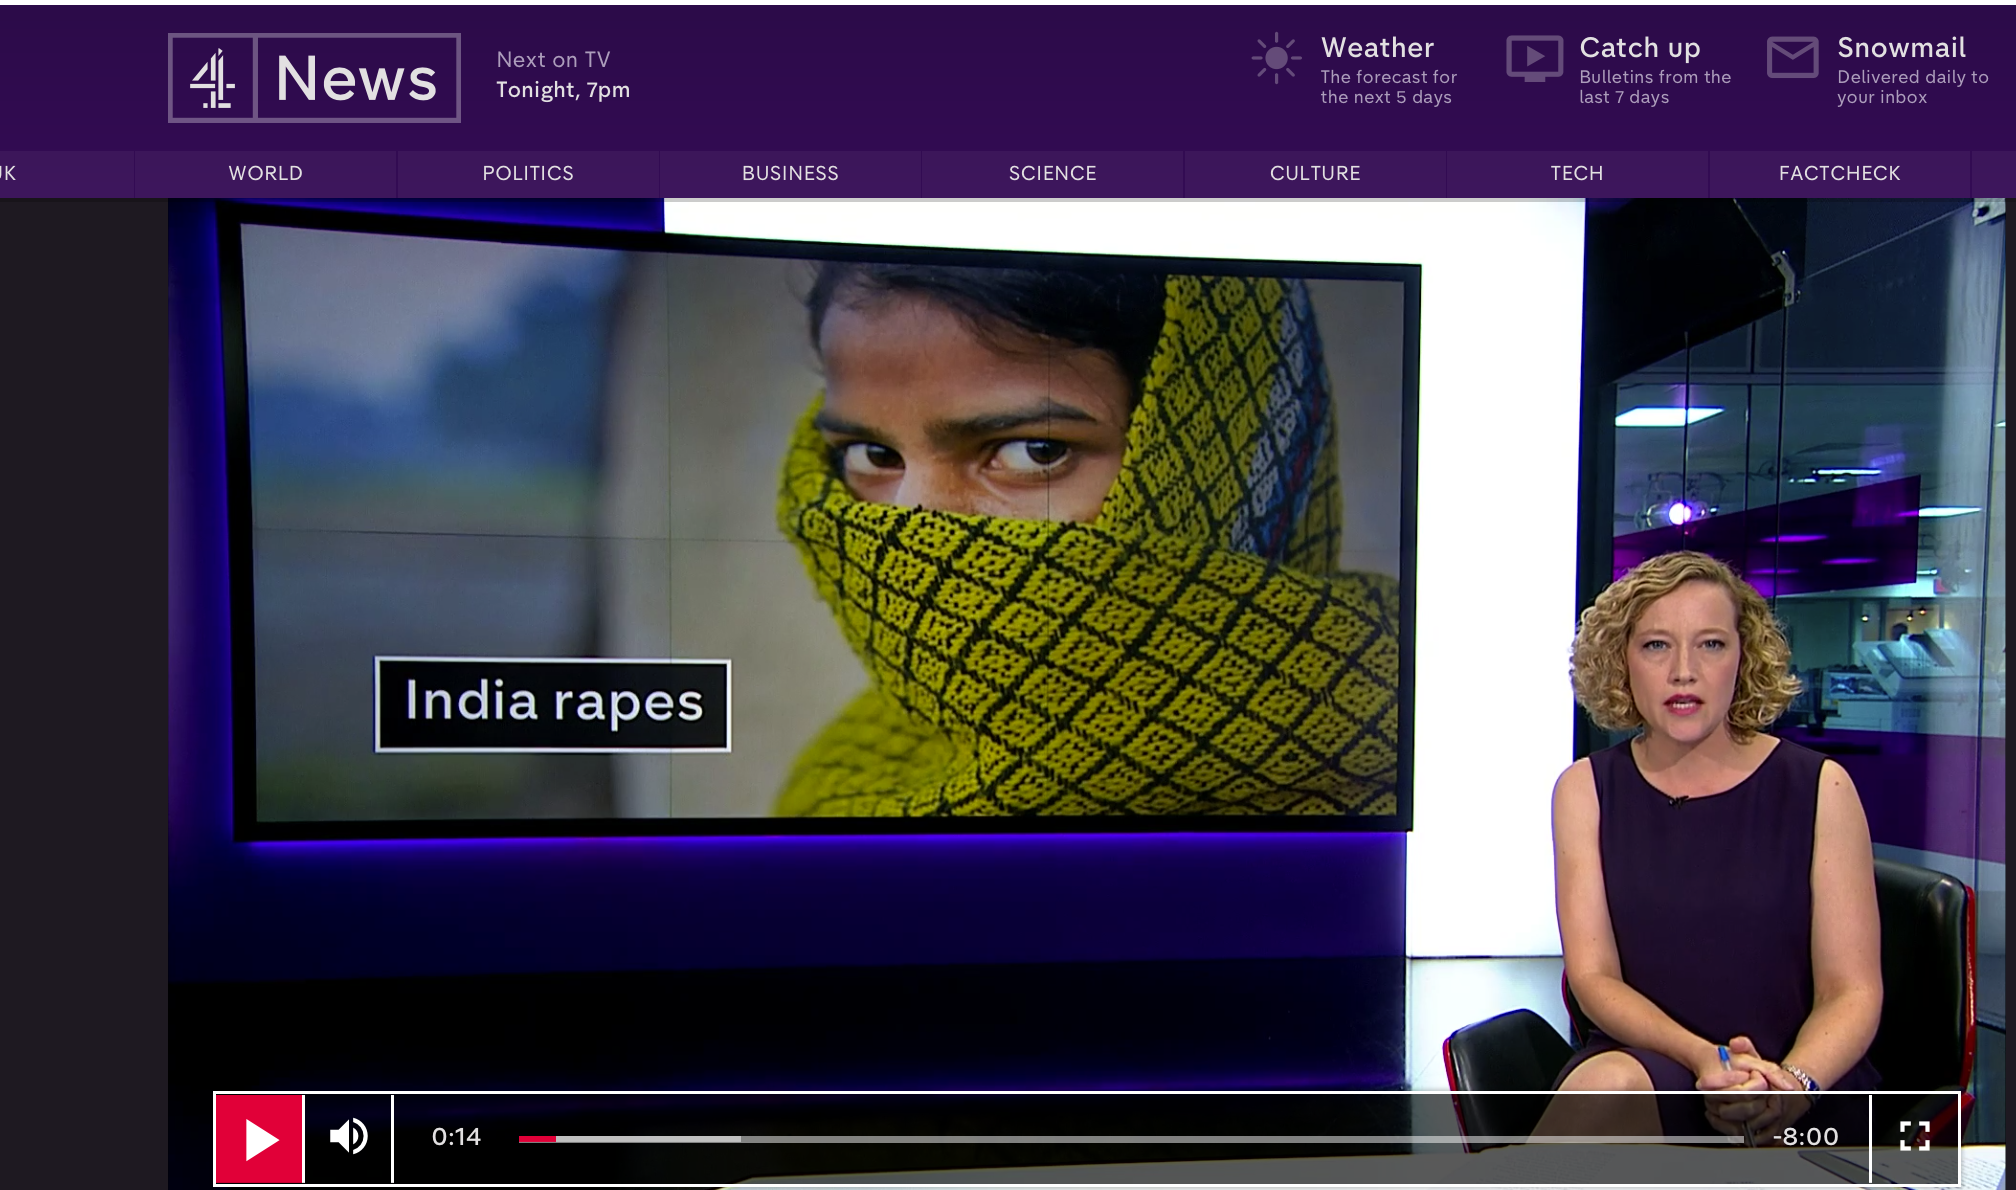 https://www.channel4.com/news/indias-rape-culture-the-survivors-stories